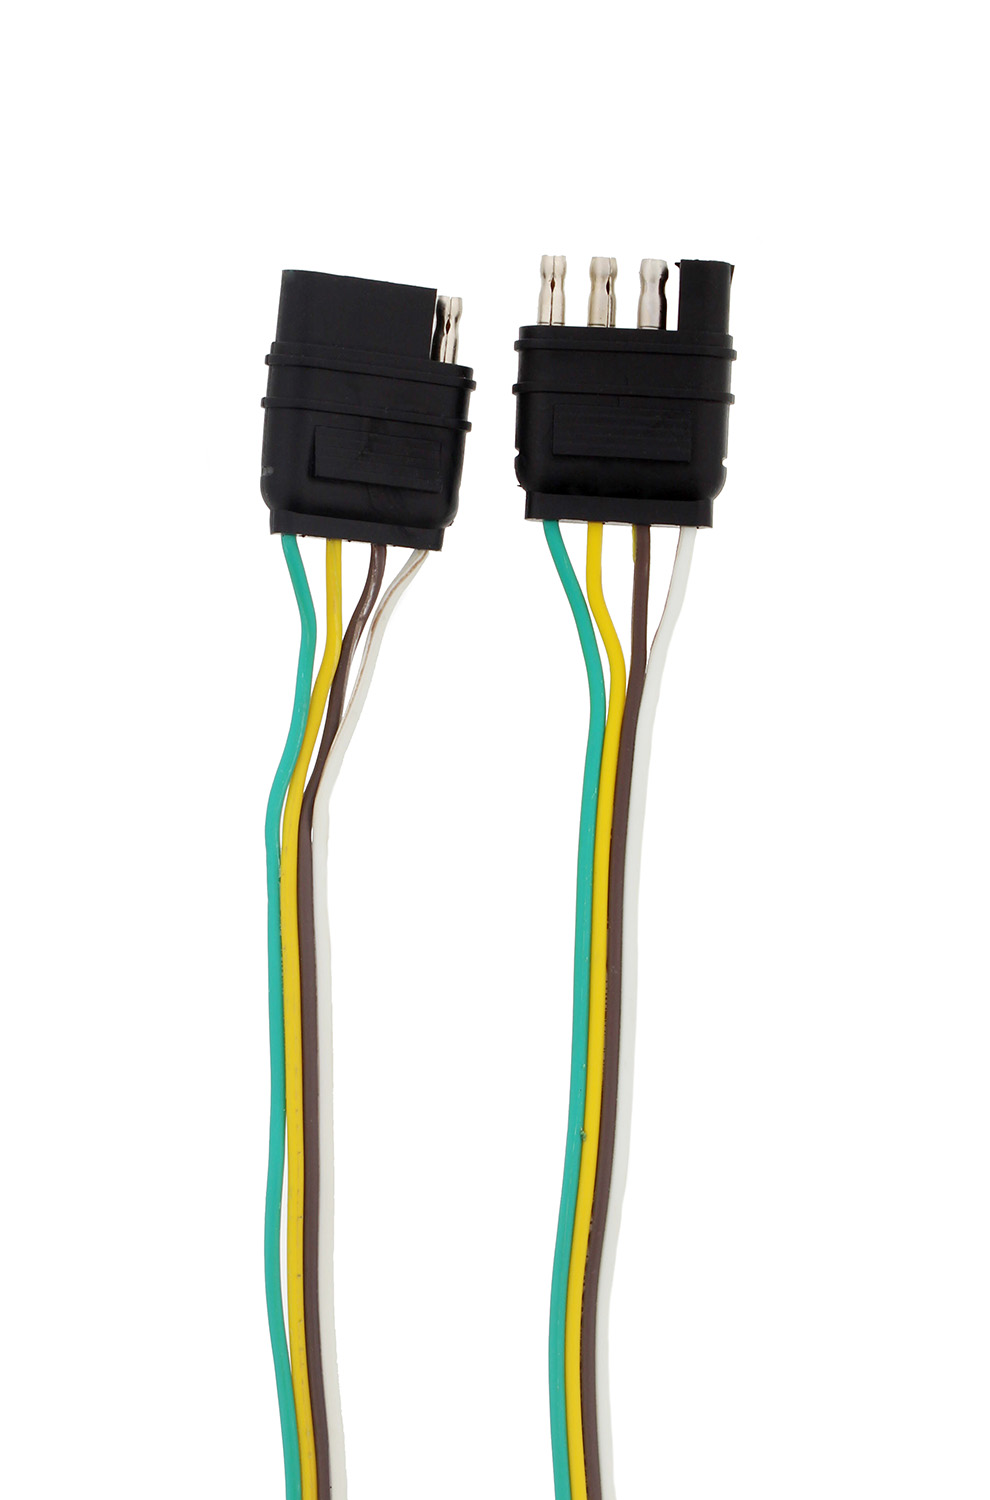 rv 4 pin trailer wiring harness abn® trailer wire extension 4-way pin plug flat trailer ...